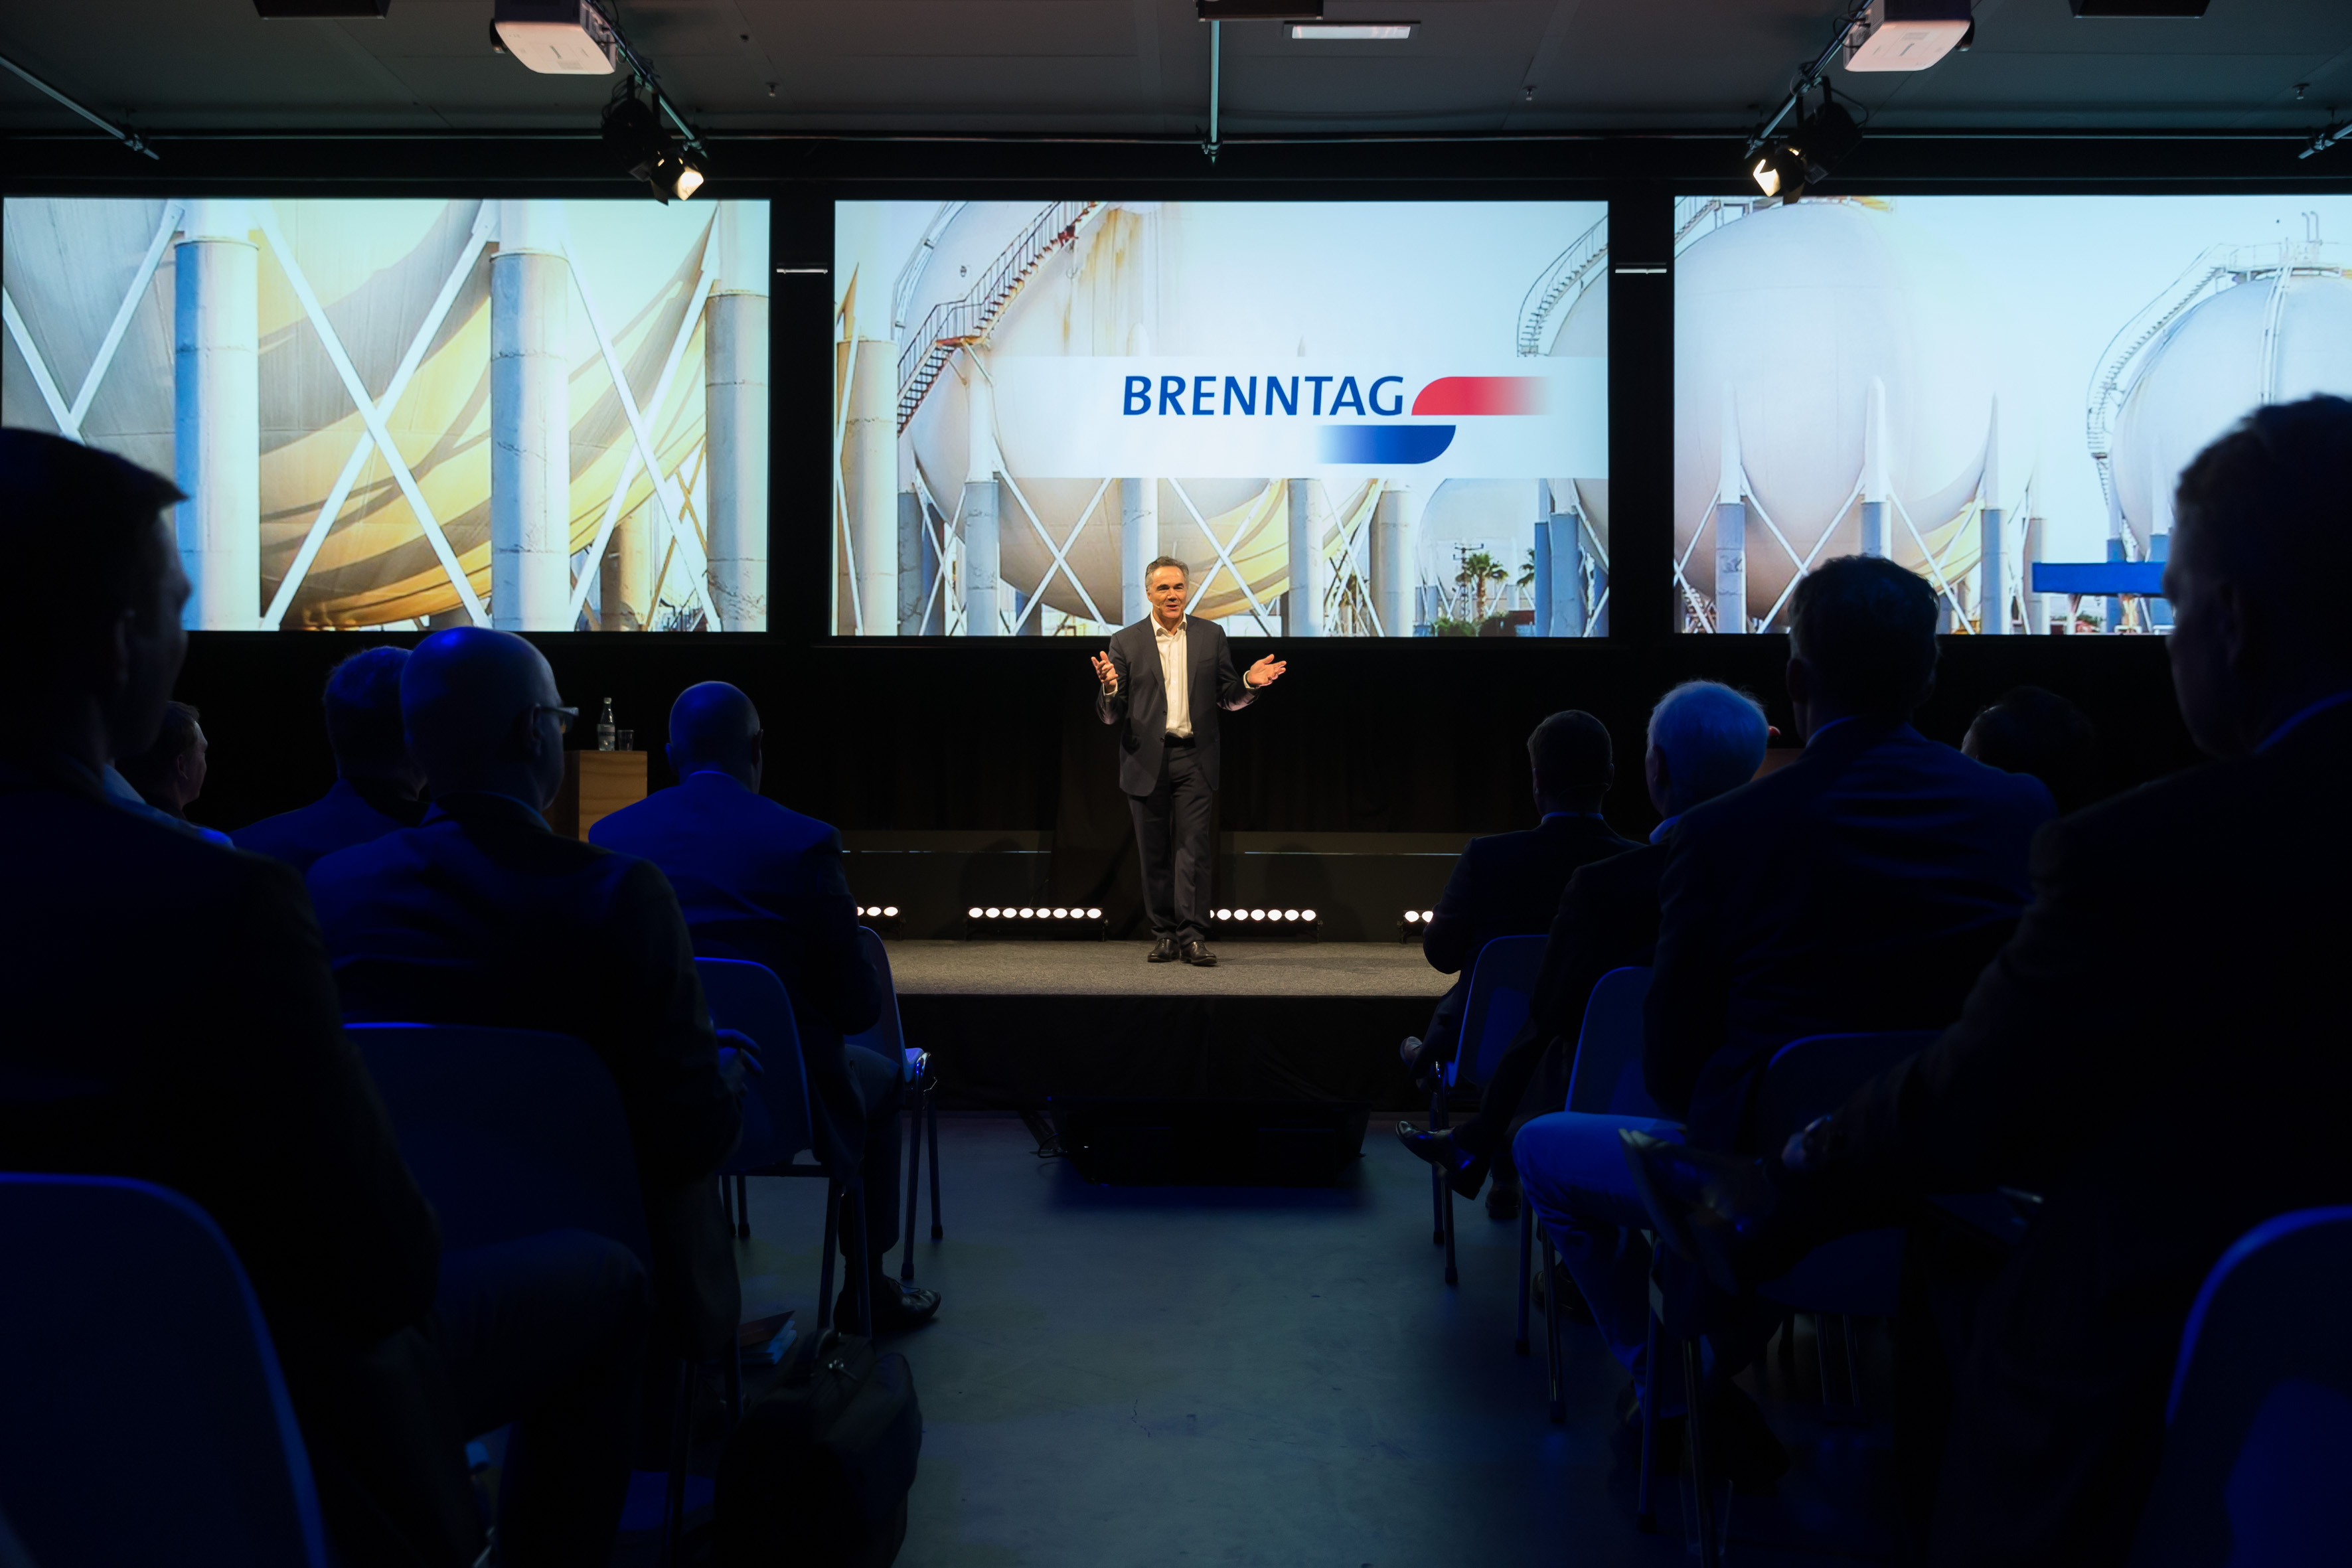 BRENNTAG LAUNCH CAMPAGNE